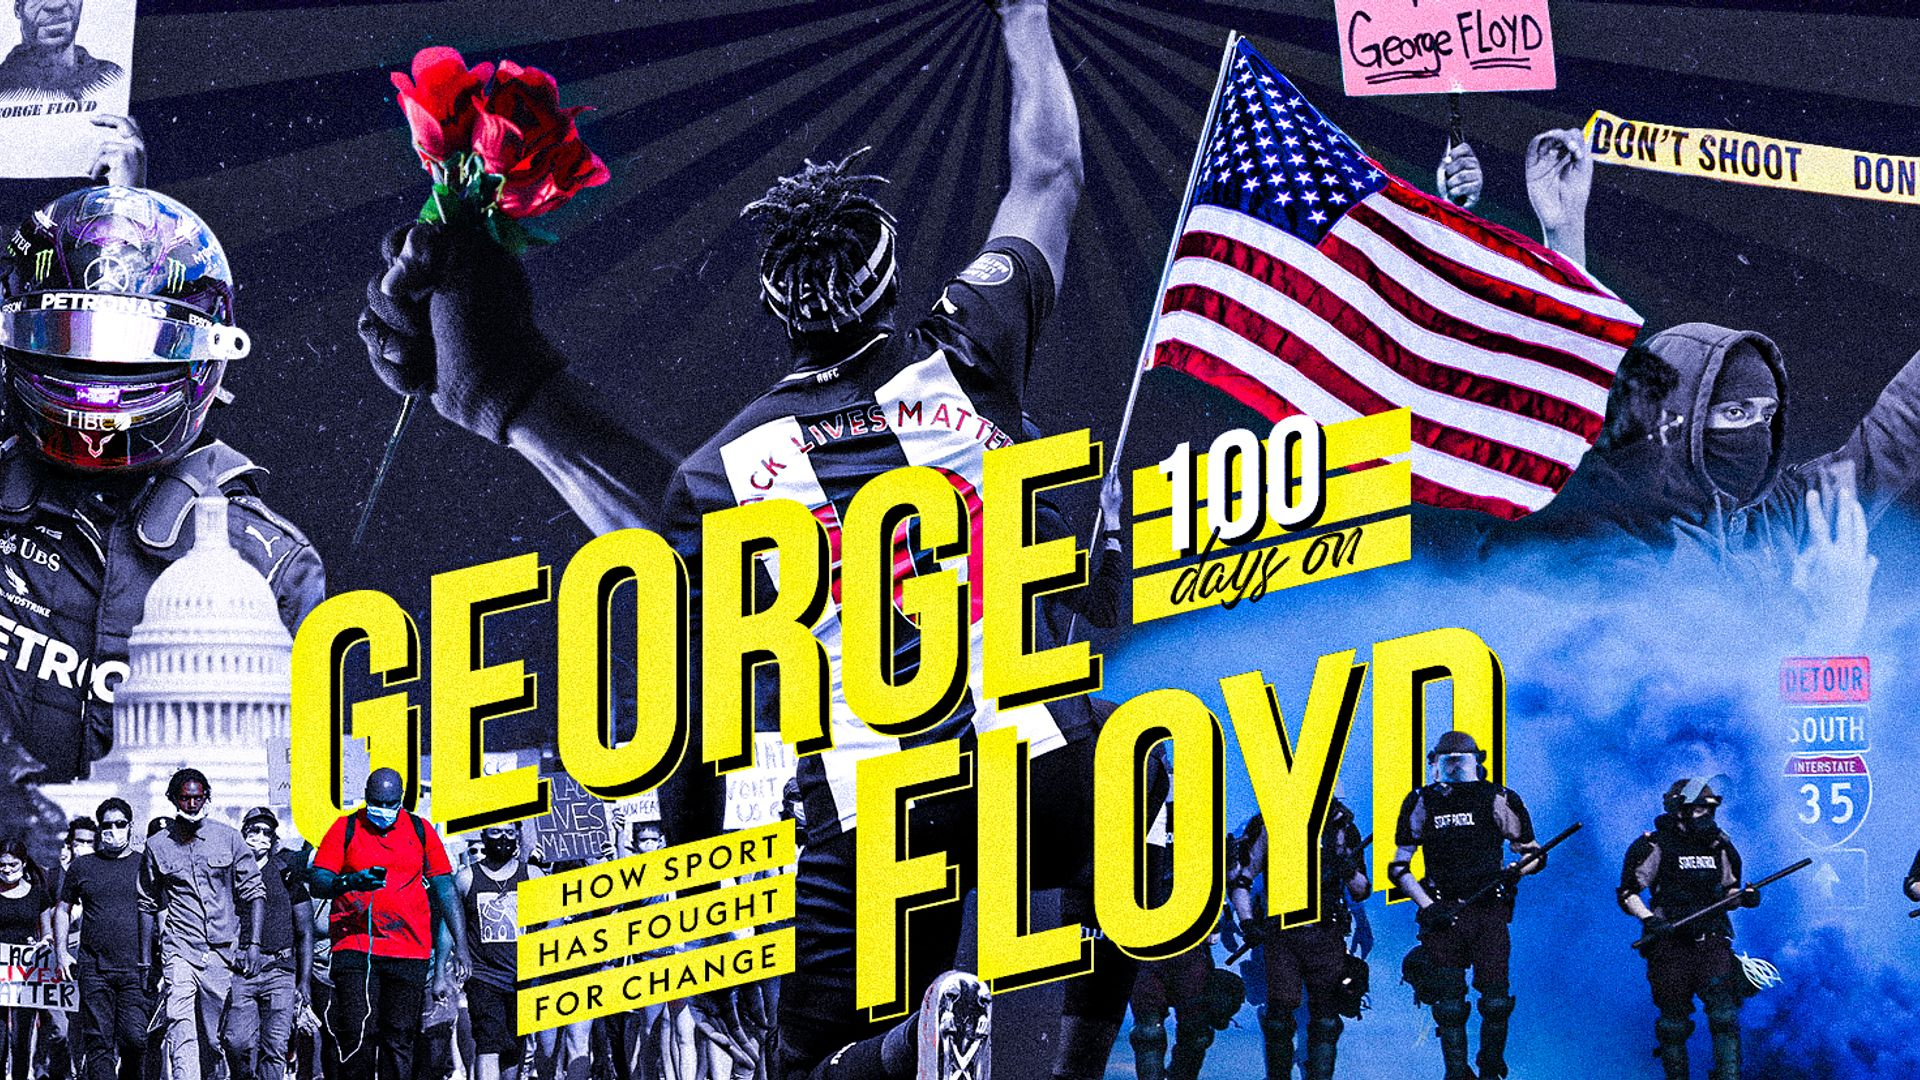 George Floyd's death: 100 days on